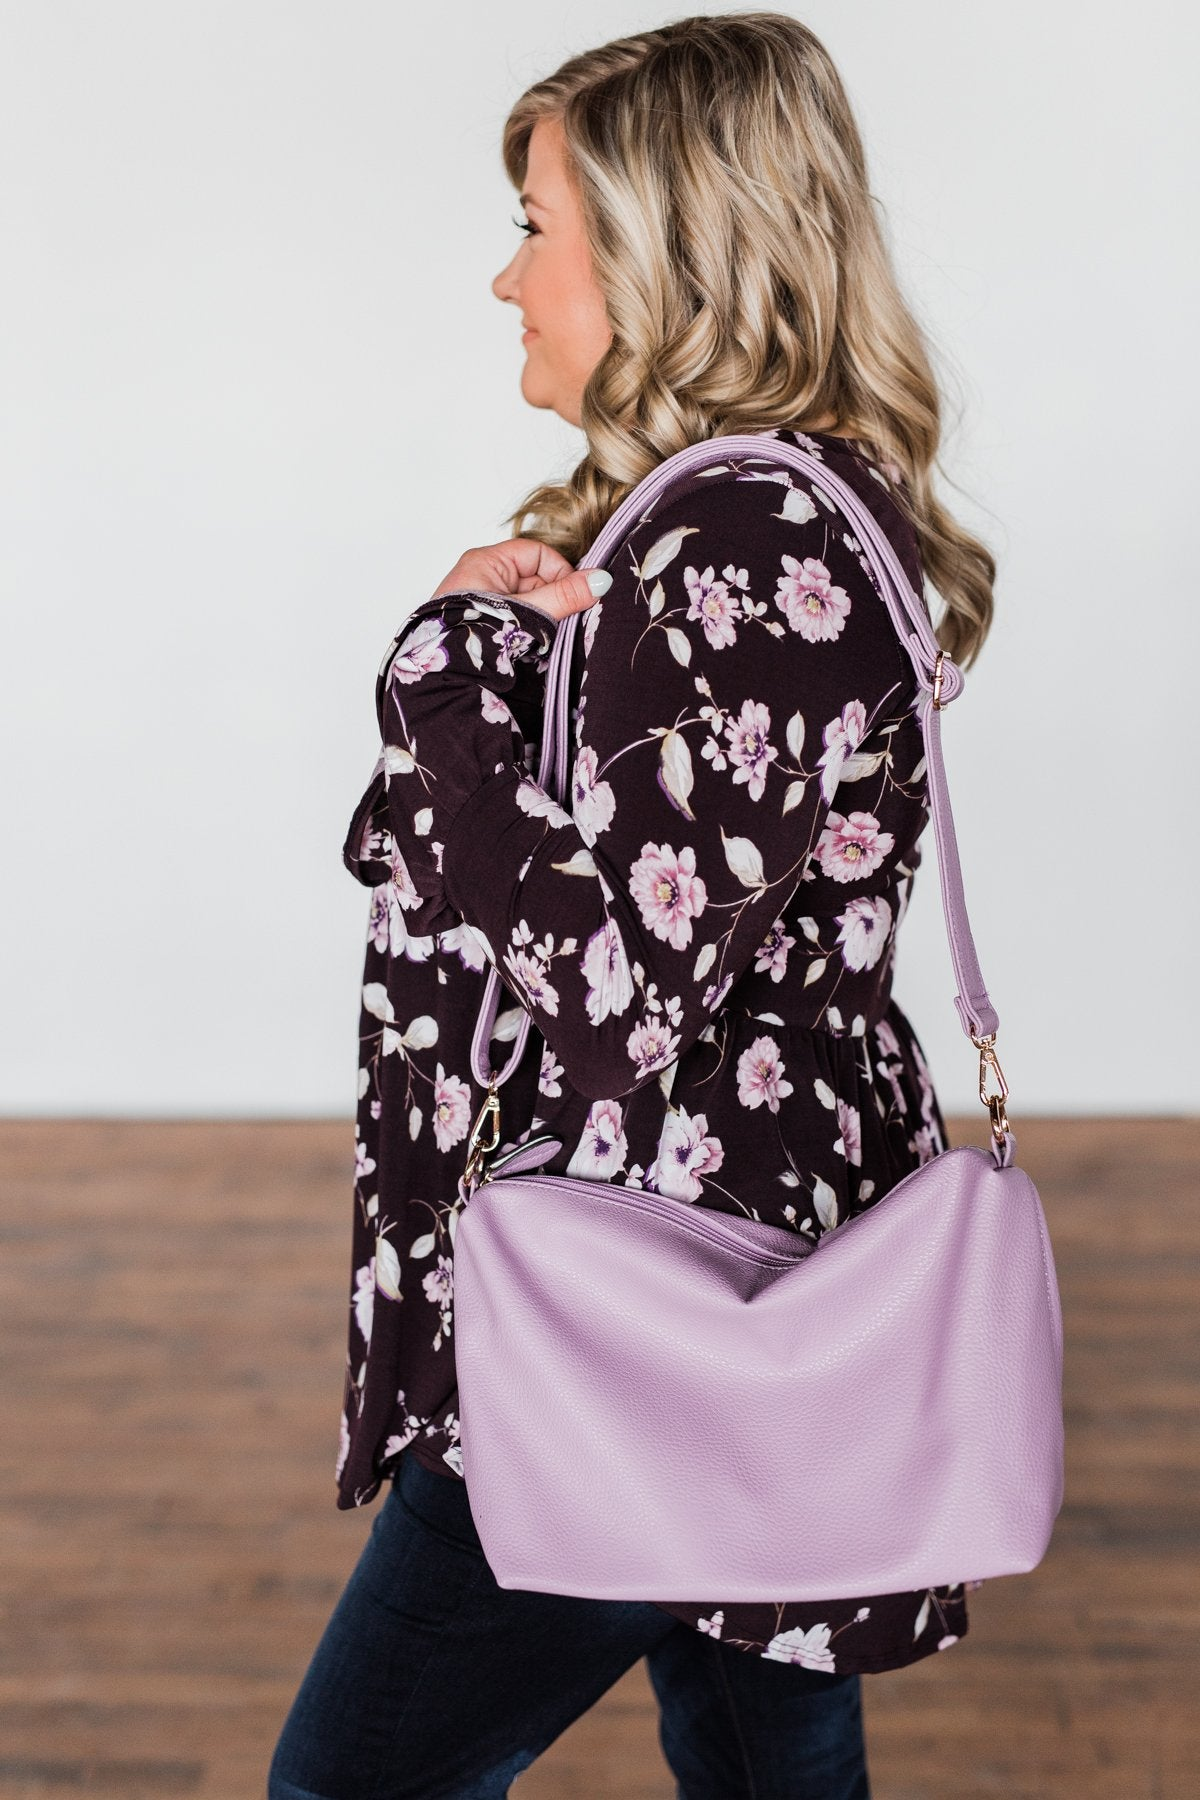 Bring on the Day Zipper Purse- Lavender